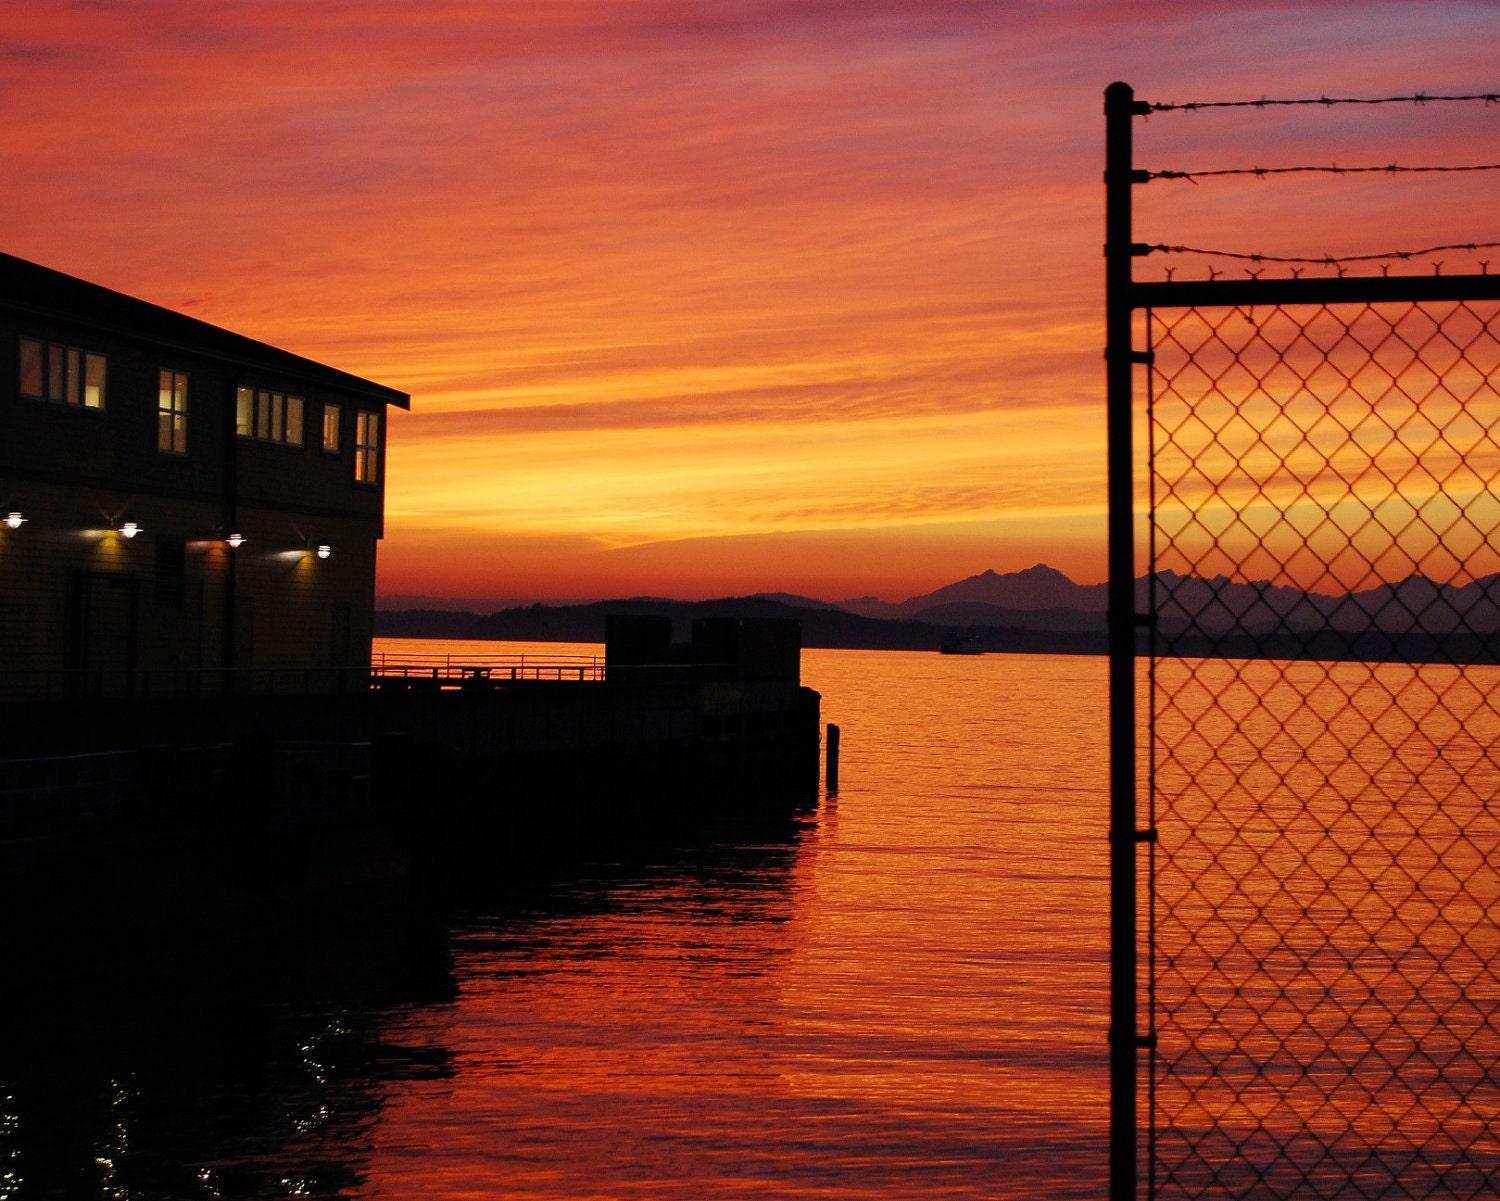 8 x 10 photo of red and gold October sunset over Puget Sound, Seattle, Washington, USA - skworld